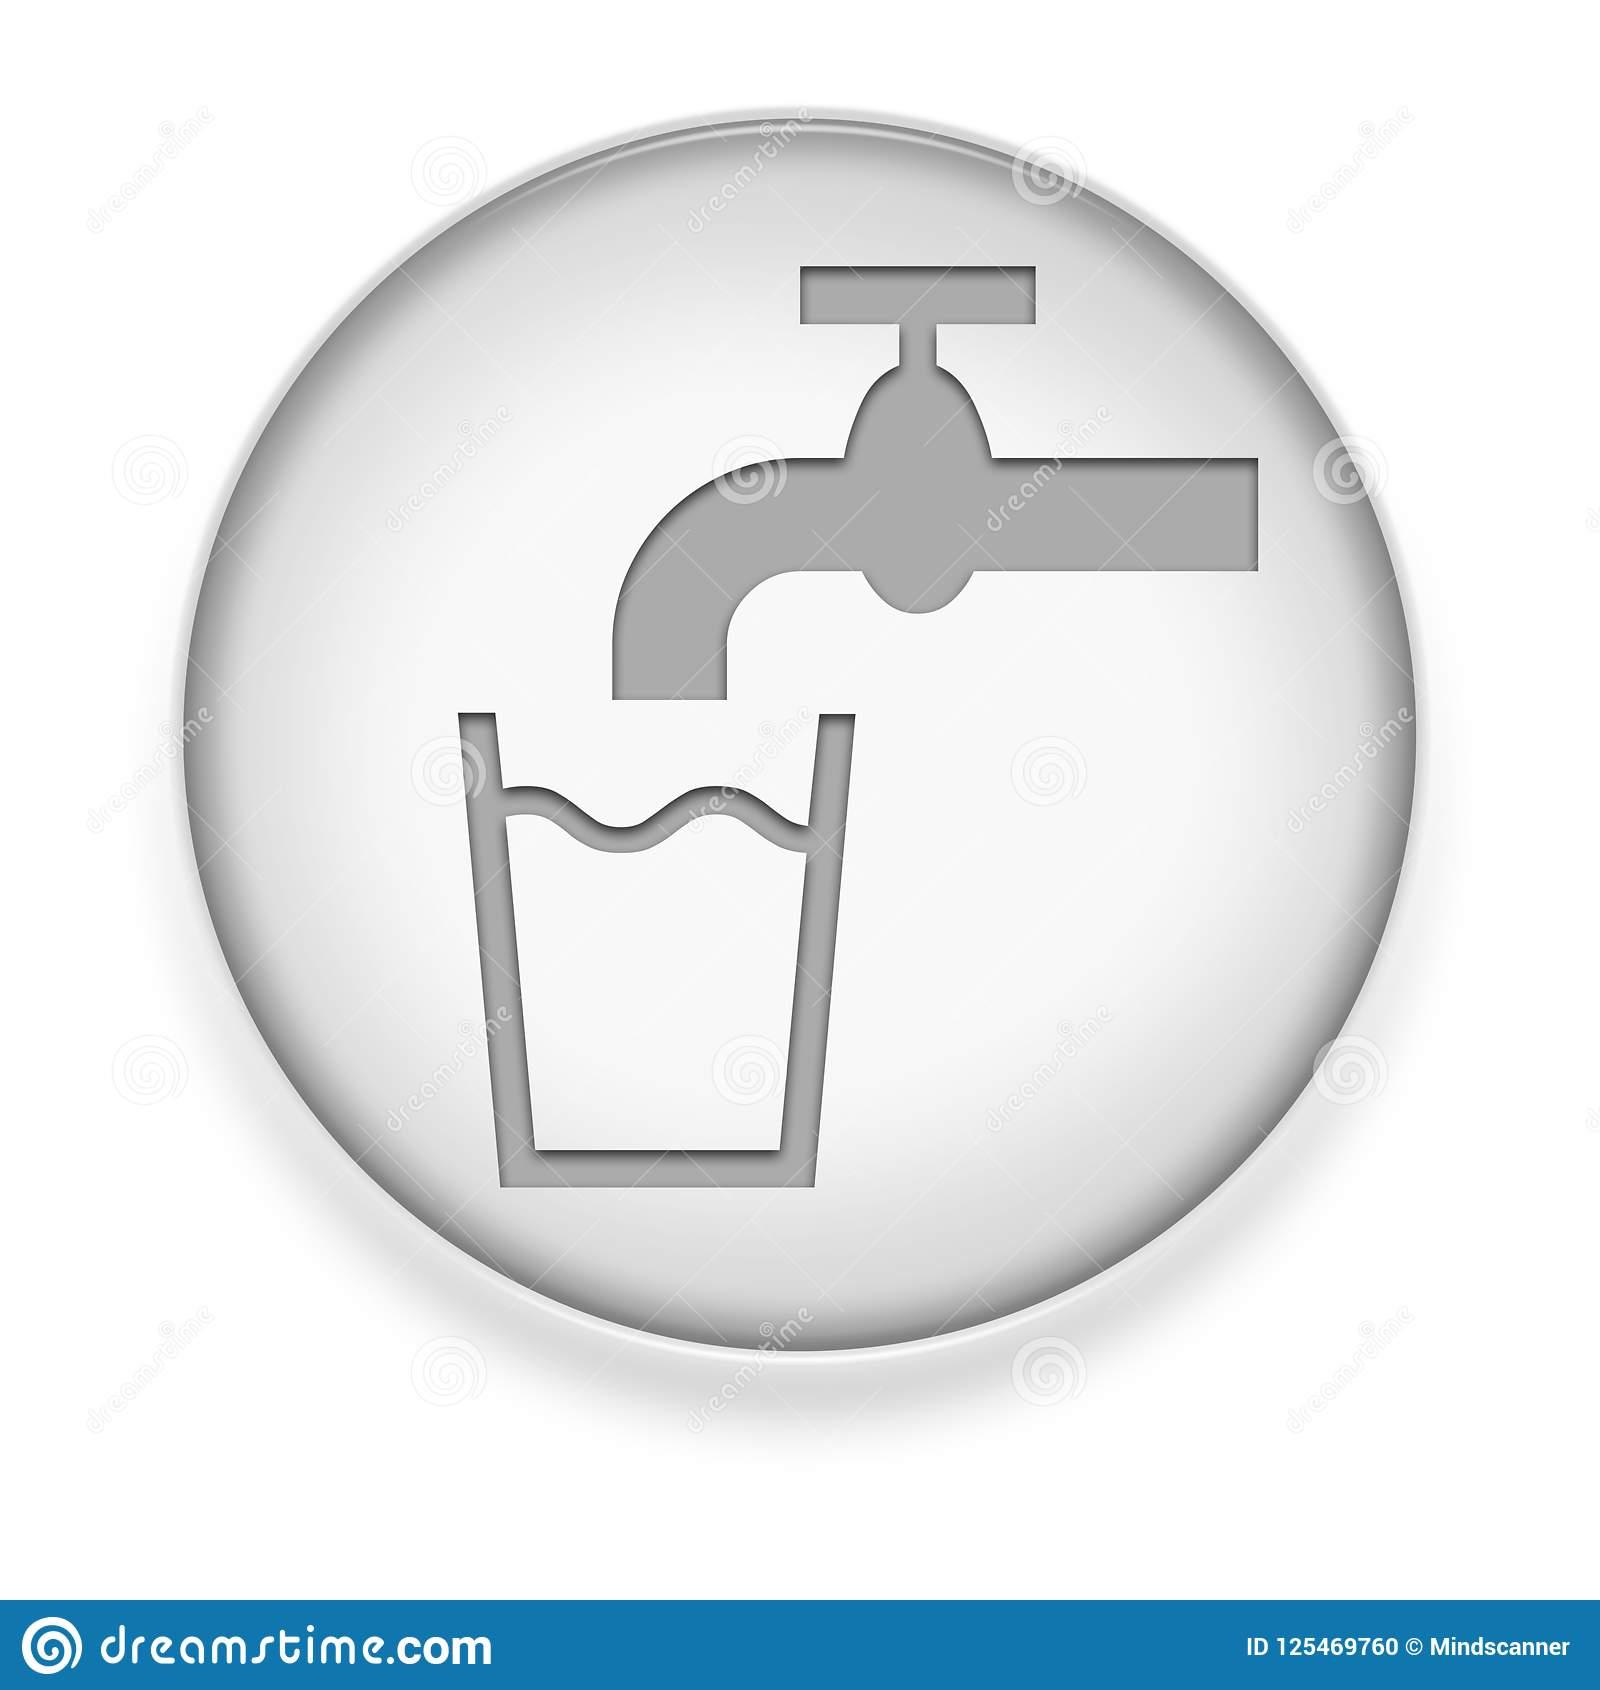 icon, button, pictogram with running water symbol